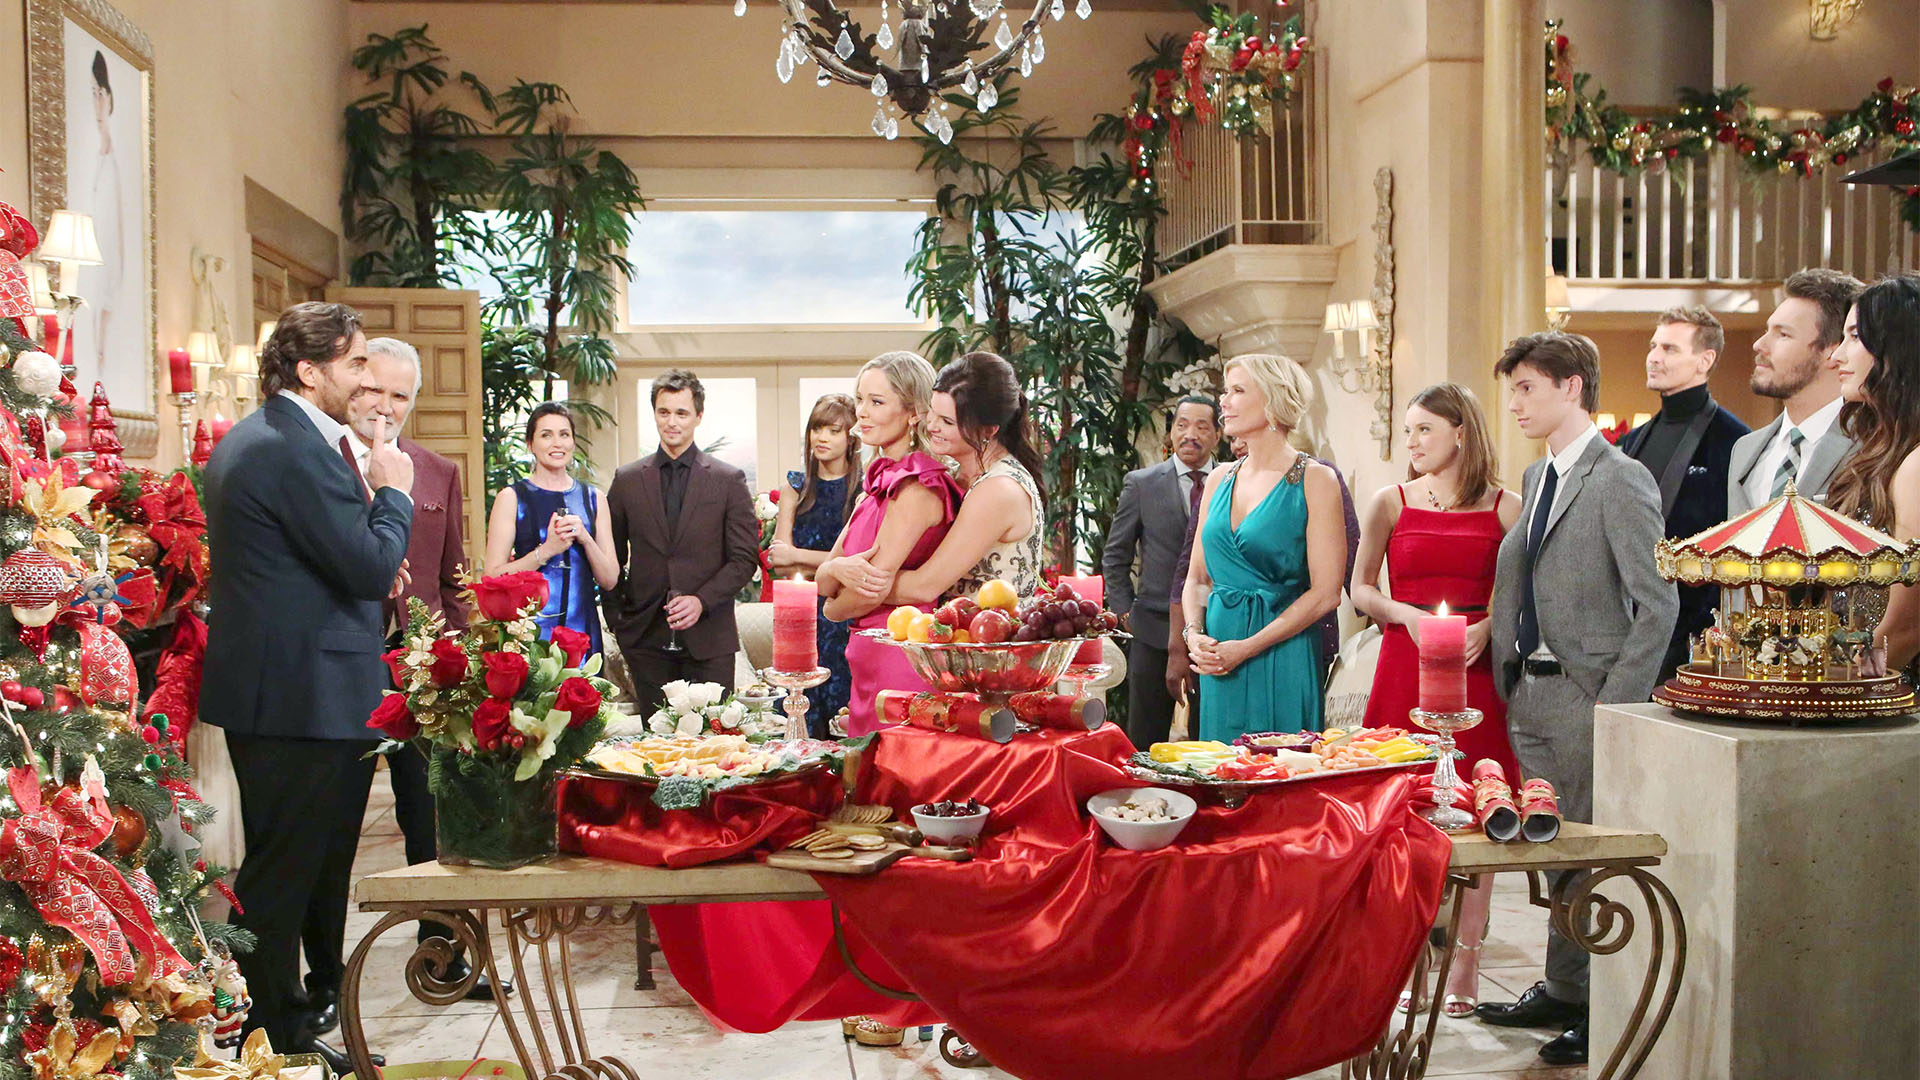 The Logan, Forrester, and Avant families come together for Christmas and Eric and Brooke make toasts about the history of their families and the meaning of the holiday.